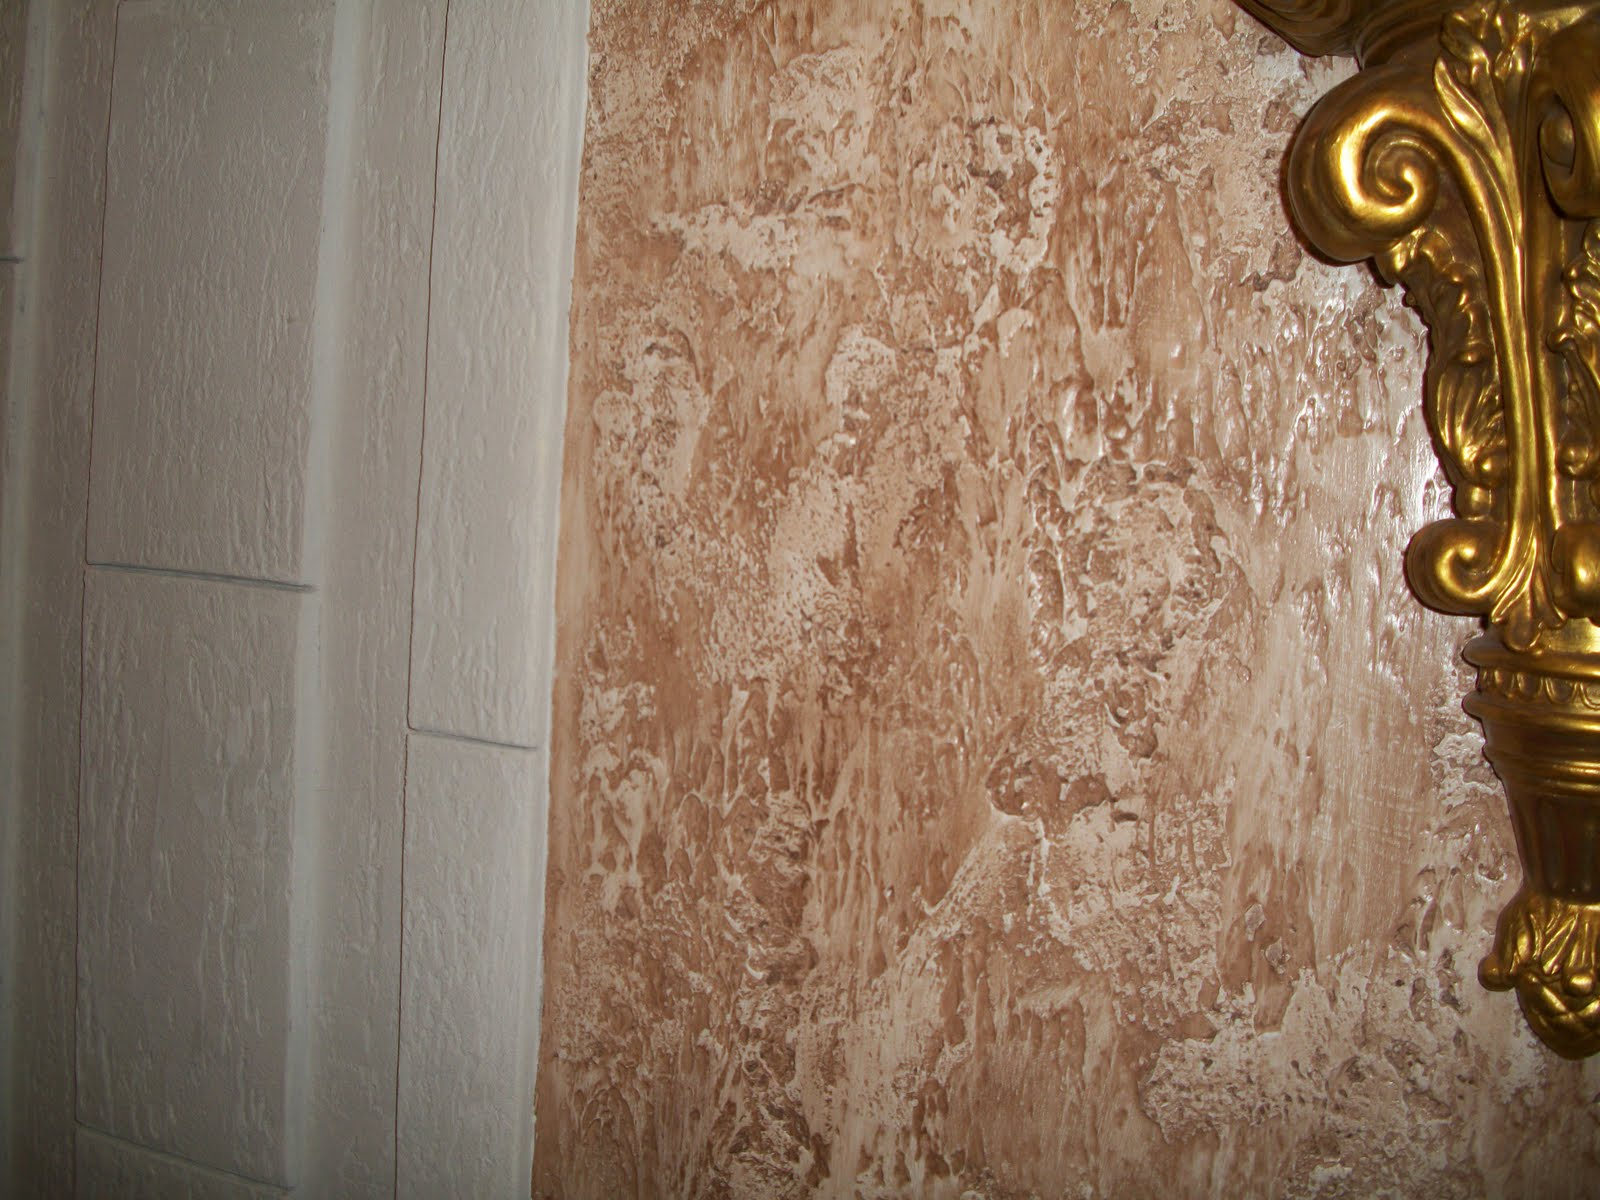 Venetian Plaster Decor Venetian Plaster Decor Enter The